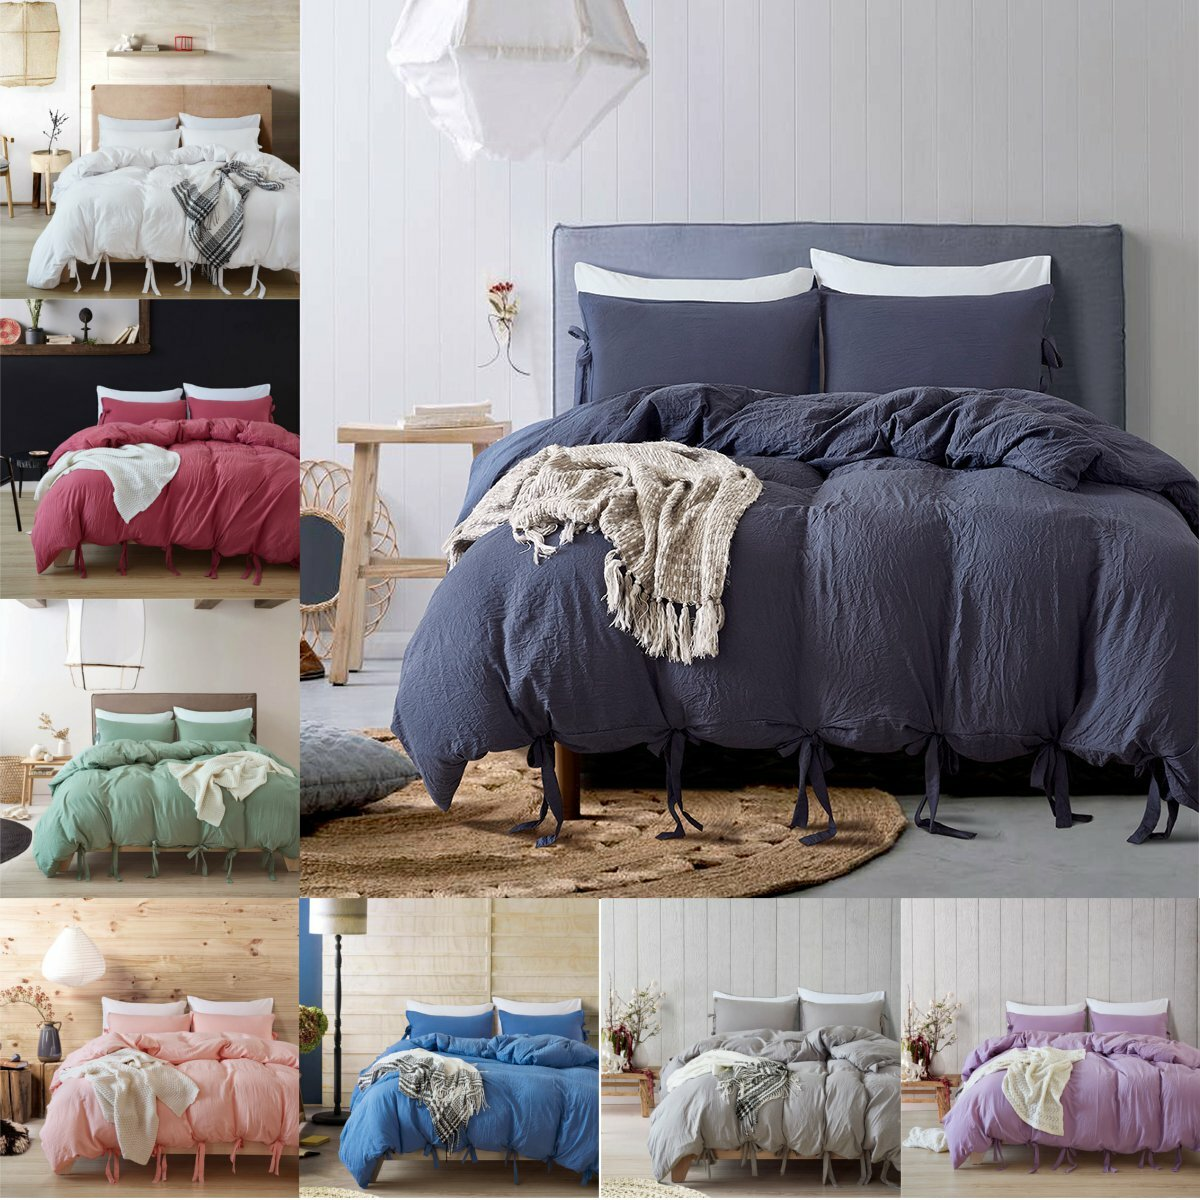 3pcs Bed Linen Solid Color Tape Bedding Set Butterfly Bowtie Duvet Cover Pillowcase Set Single Twin Queen King Size